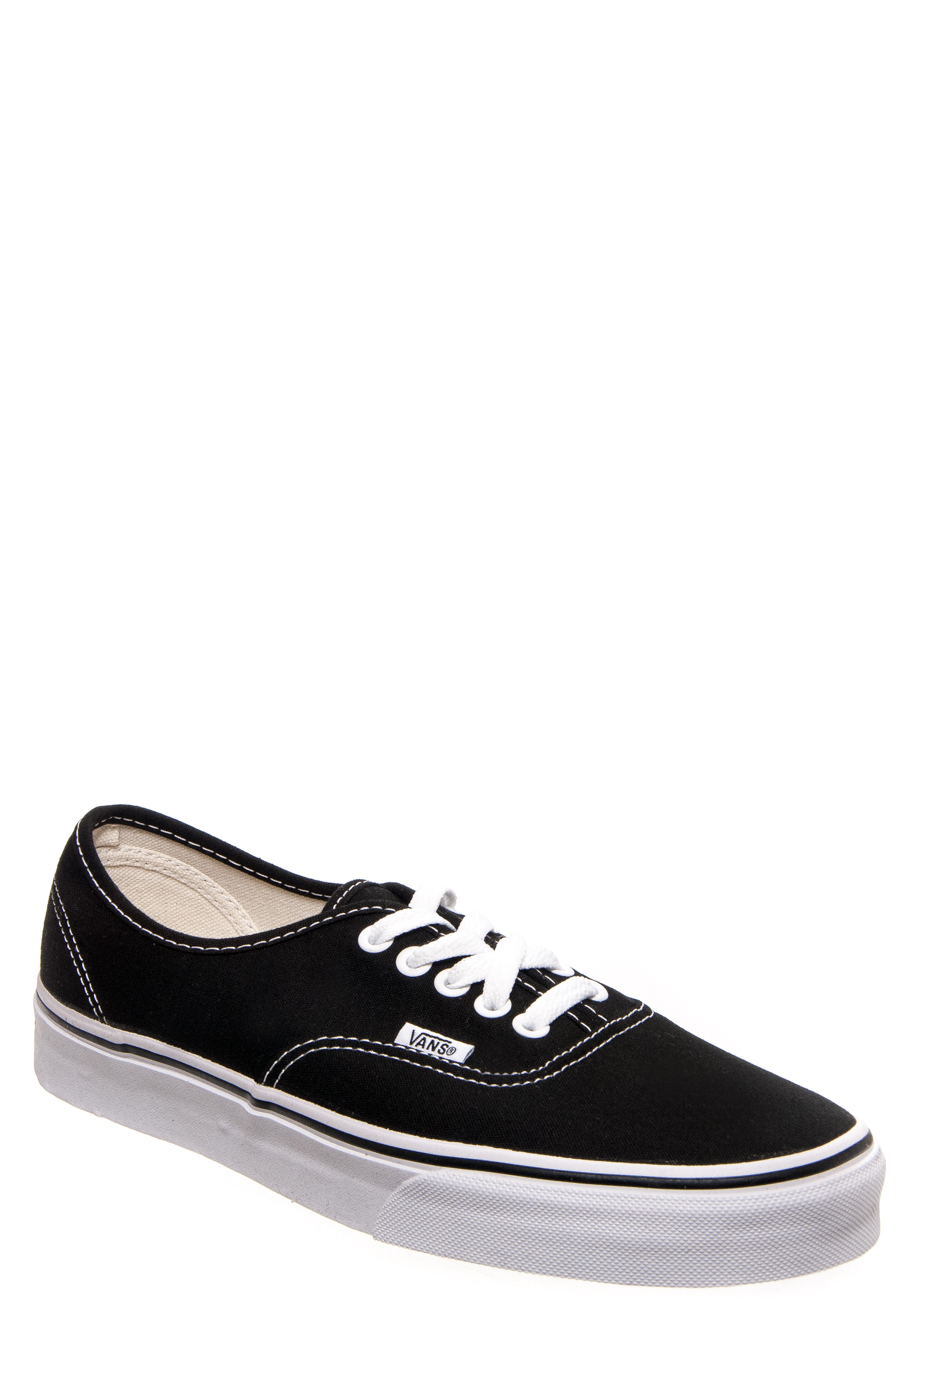 Vans Unisex Authentic Sneakers - Black / White